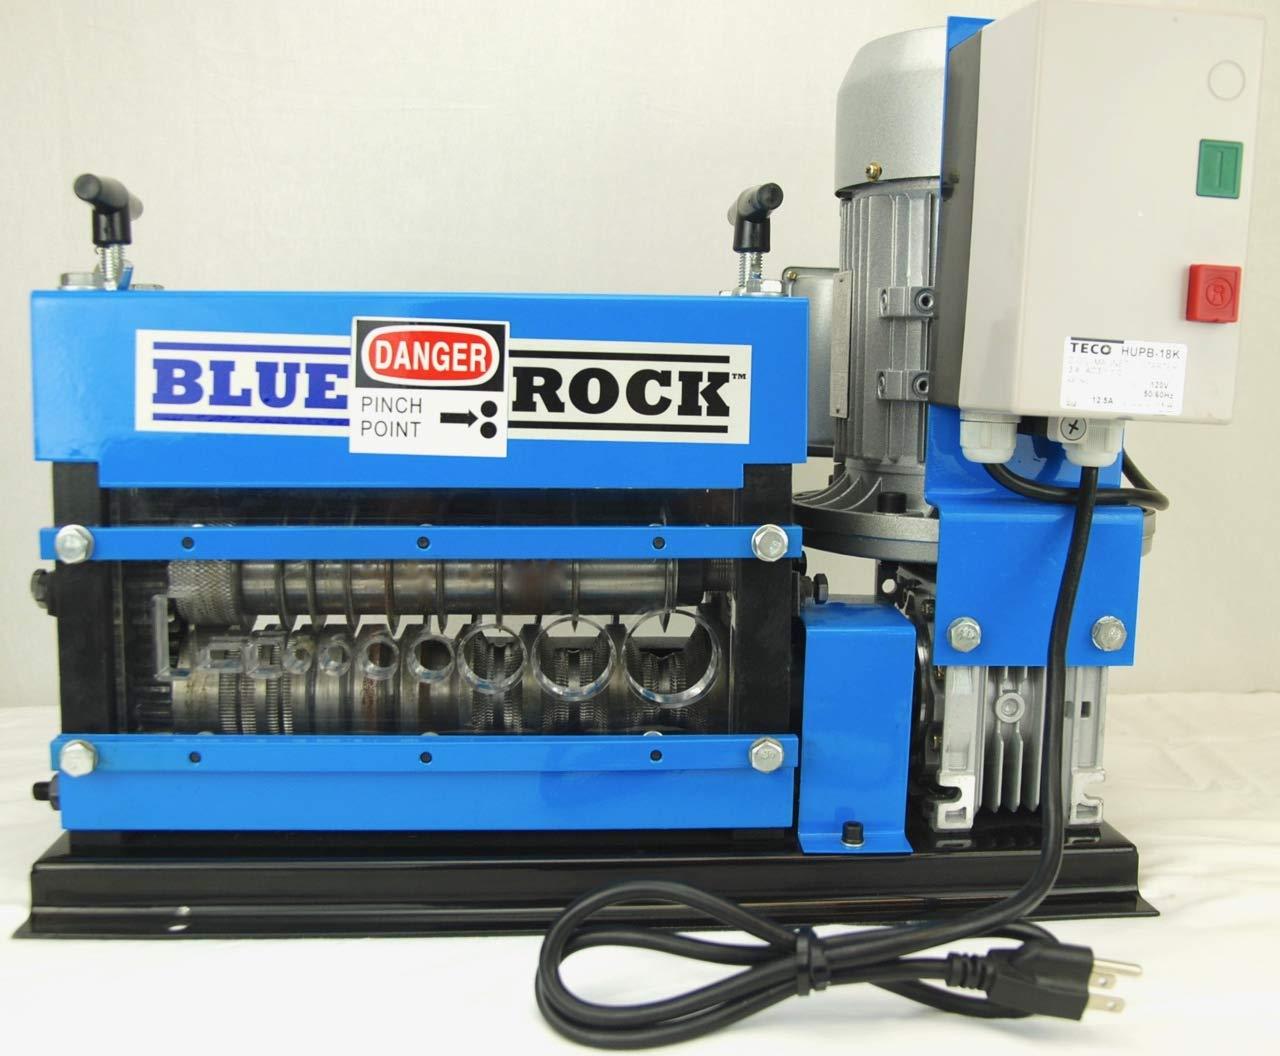 BLUEROCK Tools Model MWS-808PMO Wire Stripping Machine Copper Cable Stripper by BLUEROCK (Image #8)